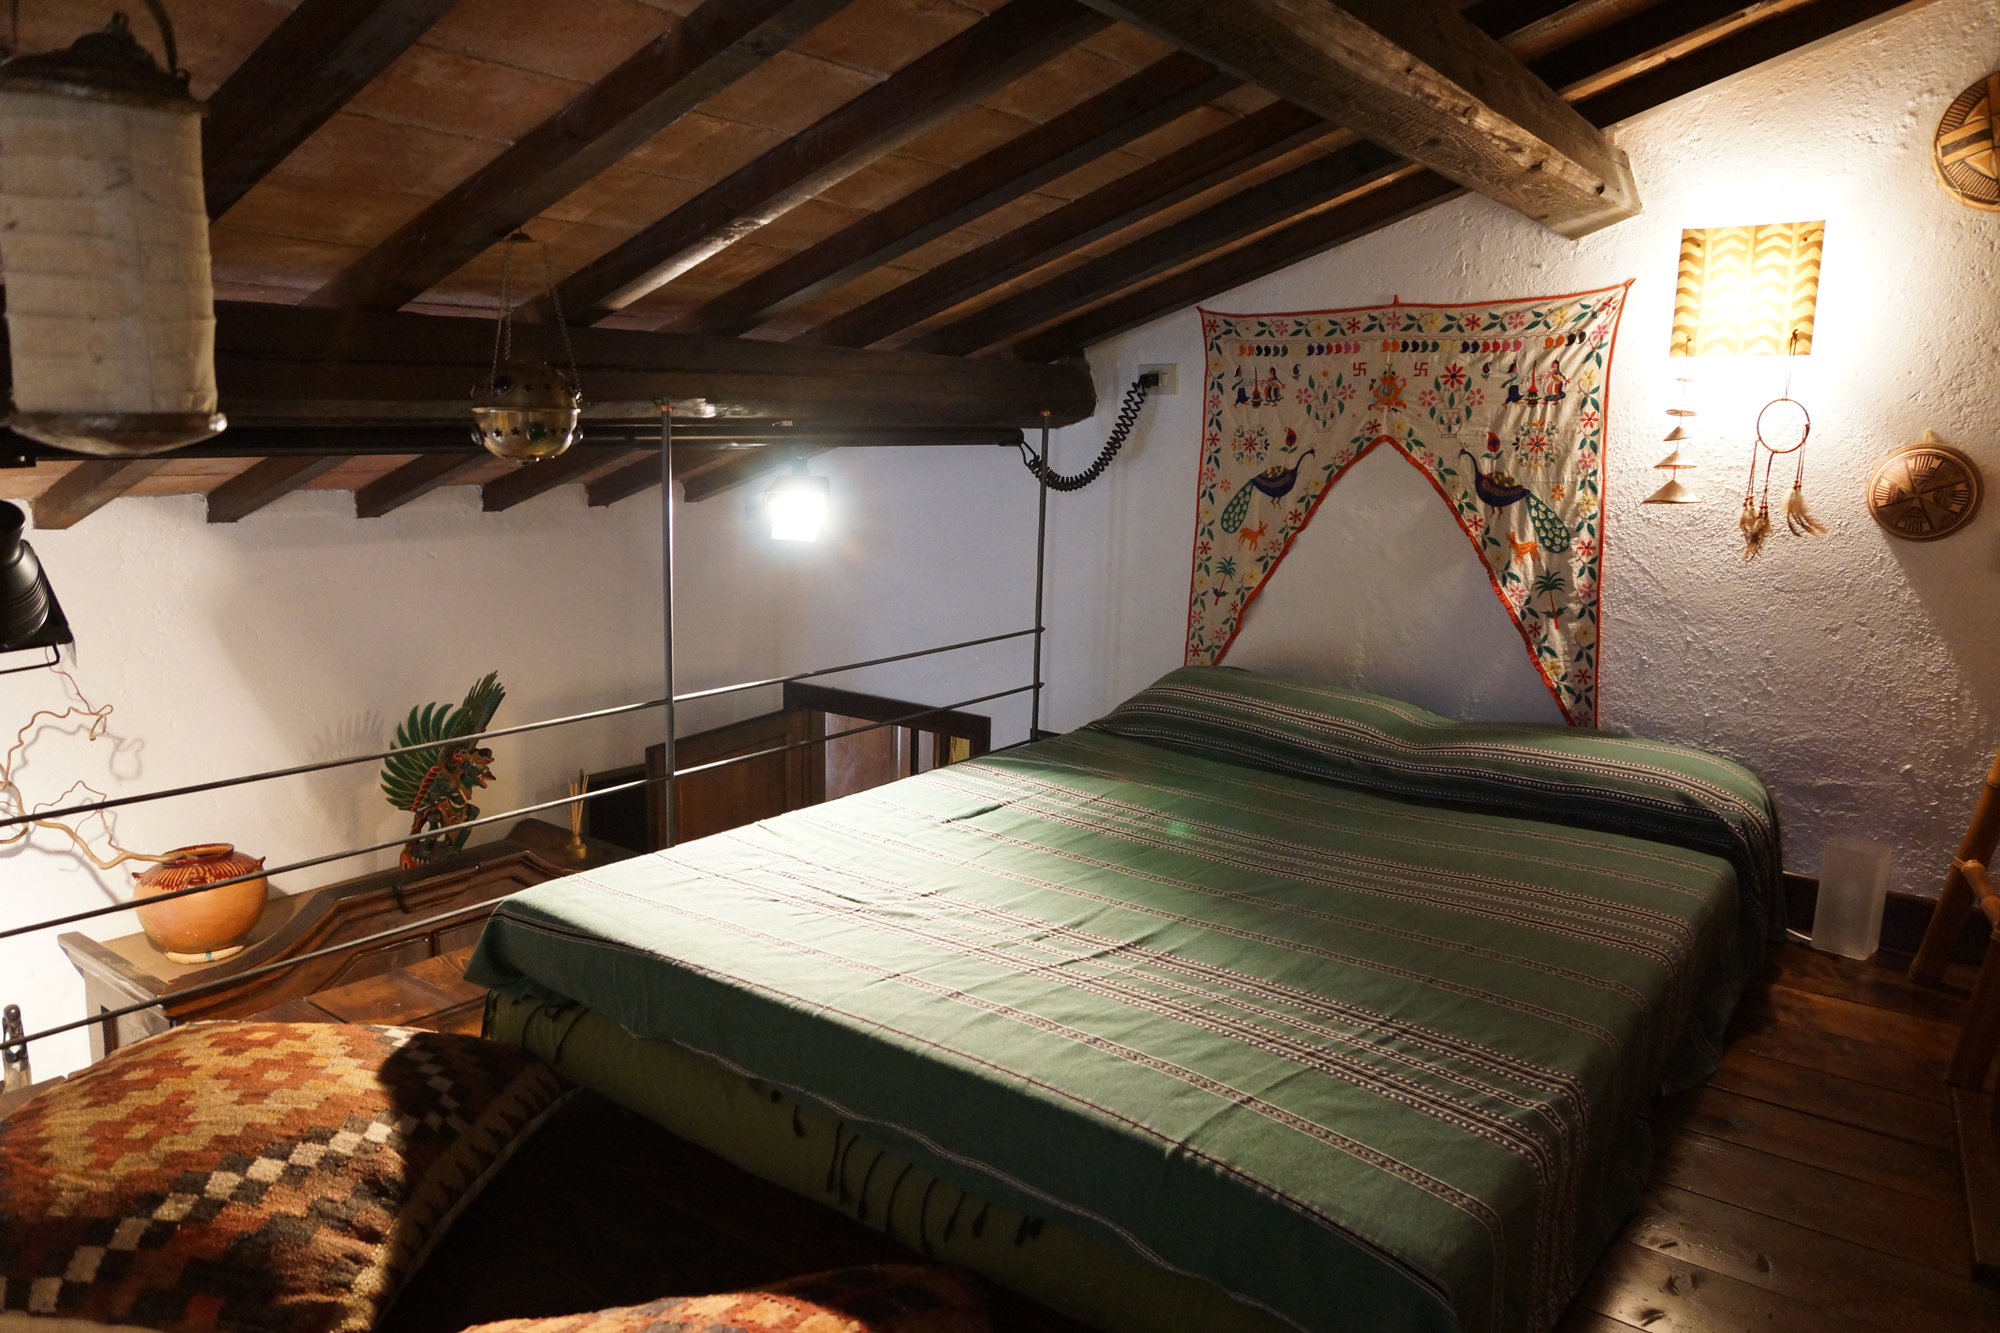 Vacanze in Umbria - Bed & Breakfast - umbria (MASSA MARTANA -  Perugia - PG) ~ altro letto su area soppalcata